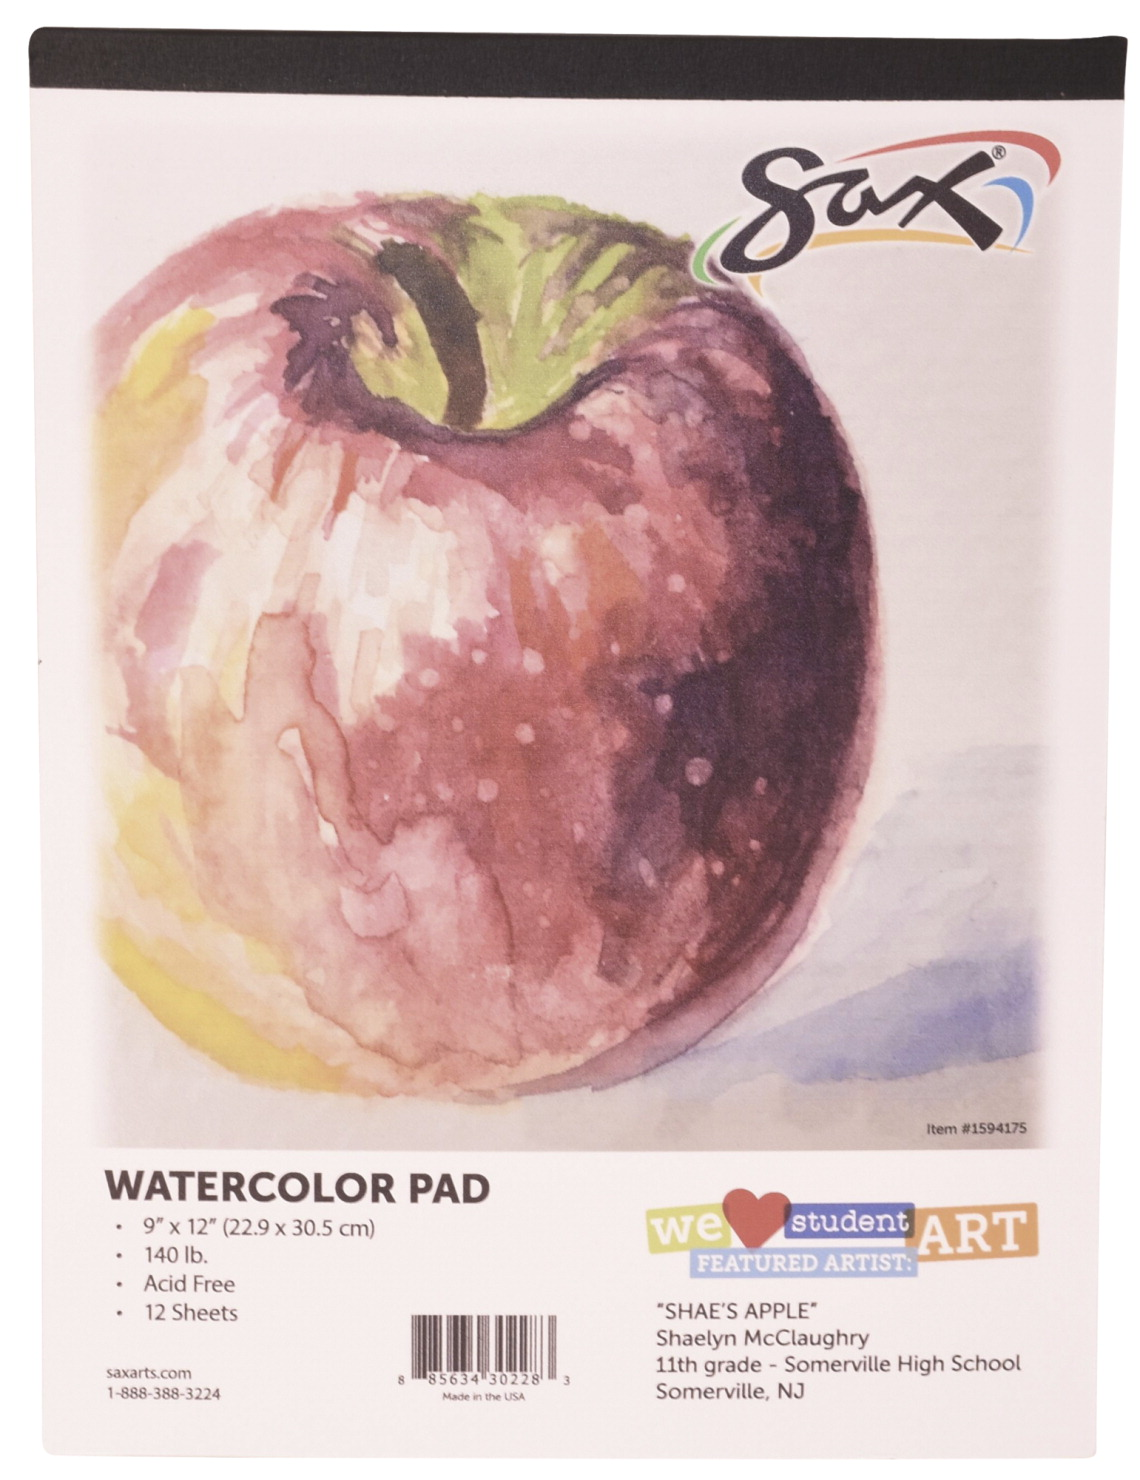 9 x 12 Inches Sax Watercolor Pad White 12 Sheets 140 lb